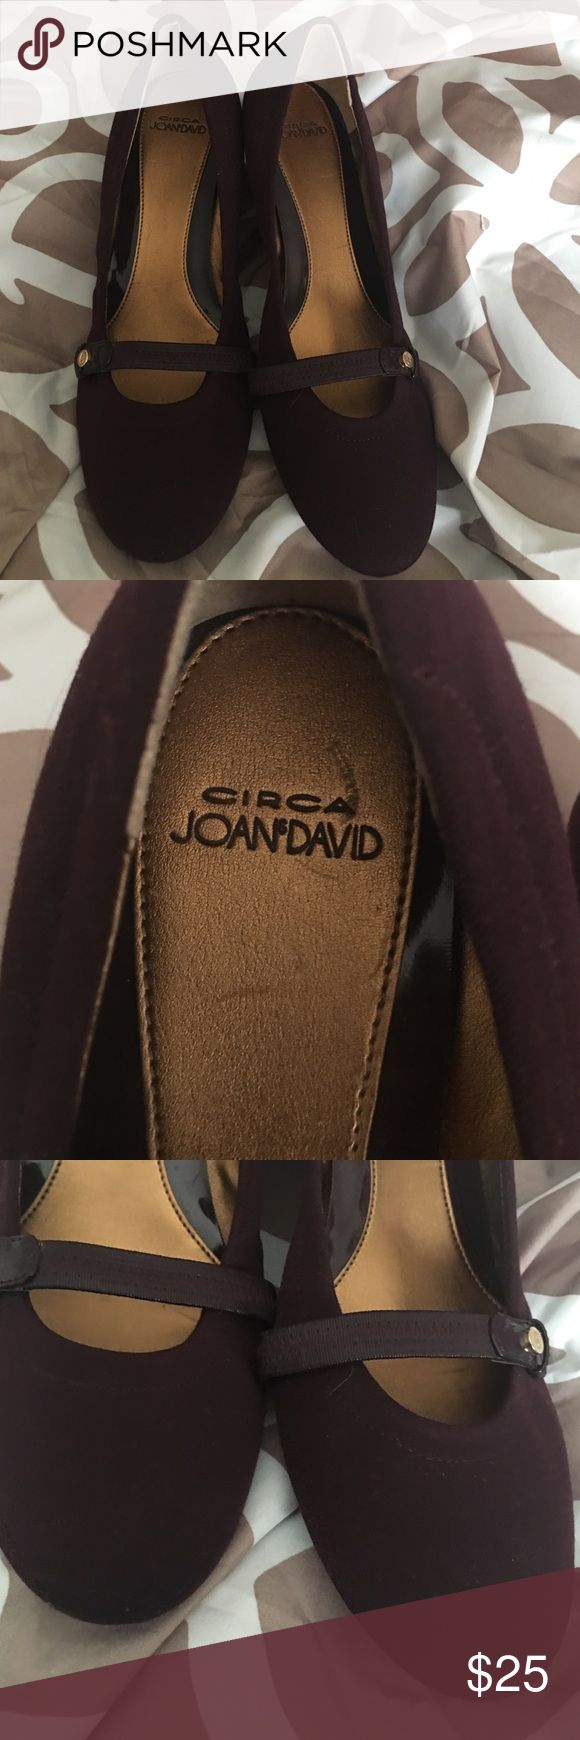 Circa Joan&david small lift of a heel maroon color Circa Joan&david maroon small lift heel attached as one piece to shoe size 8.5 never been worn Joan & David Shoes